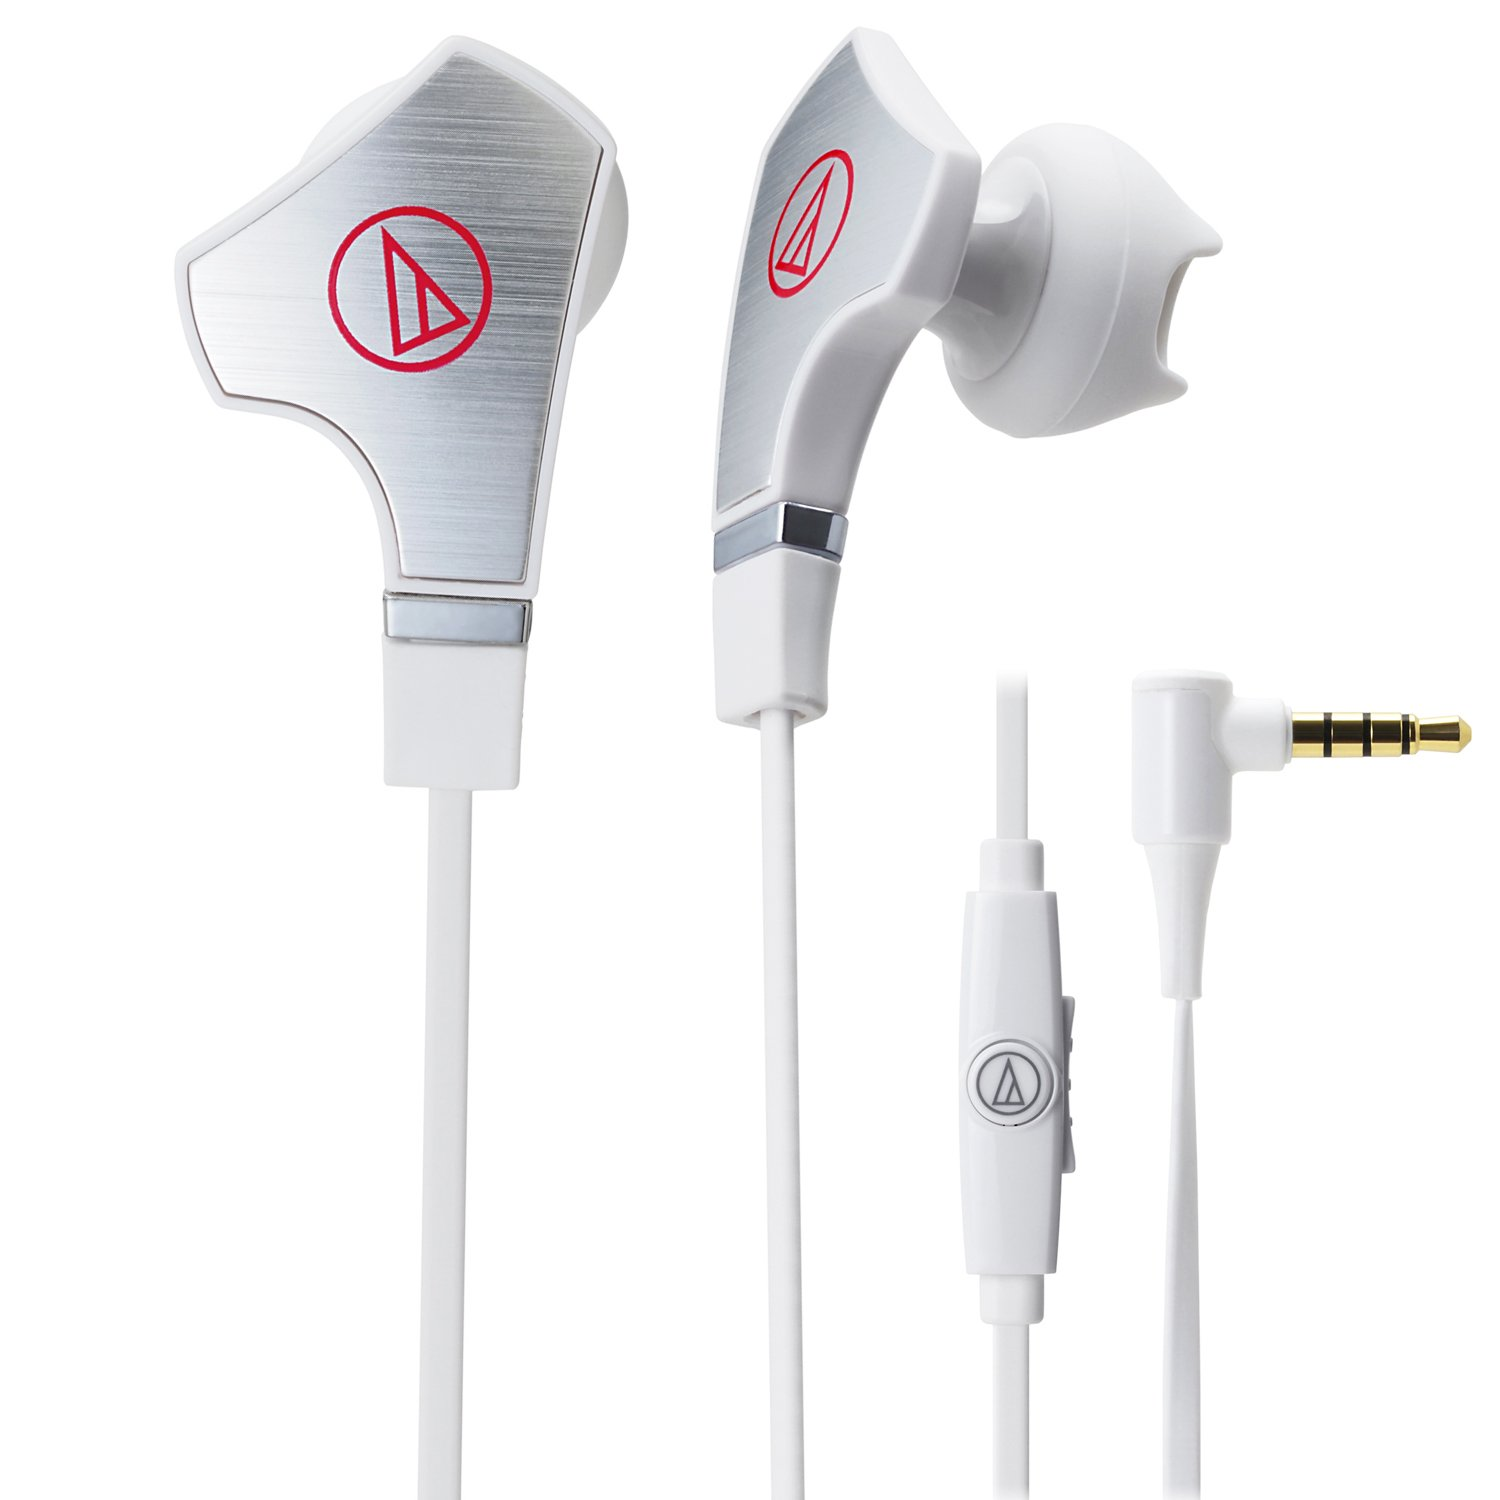 AUDIO TECHNICA ATH-CHX7iS SonicFuel Hybrid Earbud Headphones for Smartphones / ATH-CHX7ISWH /